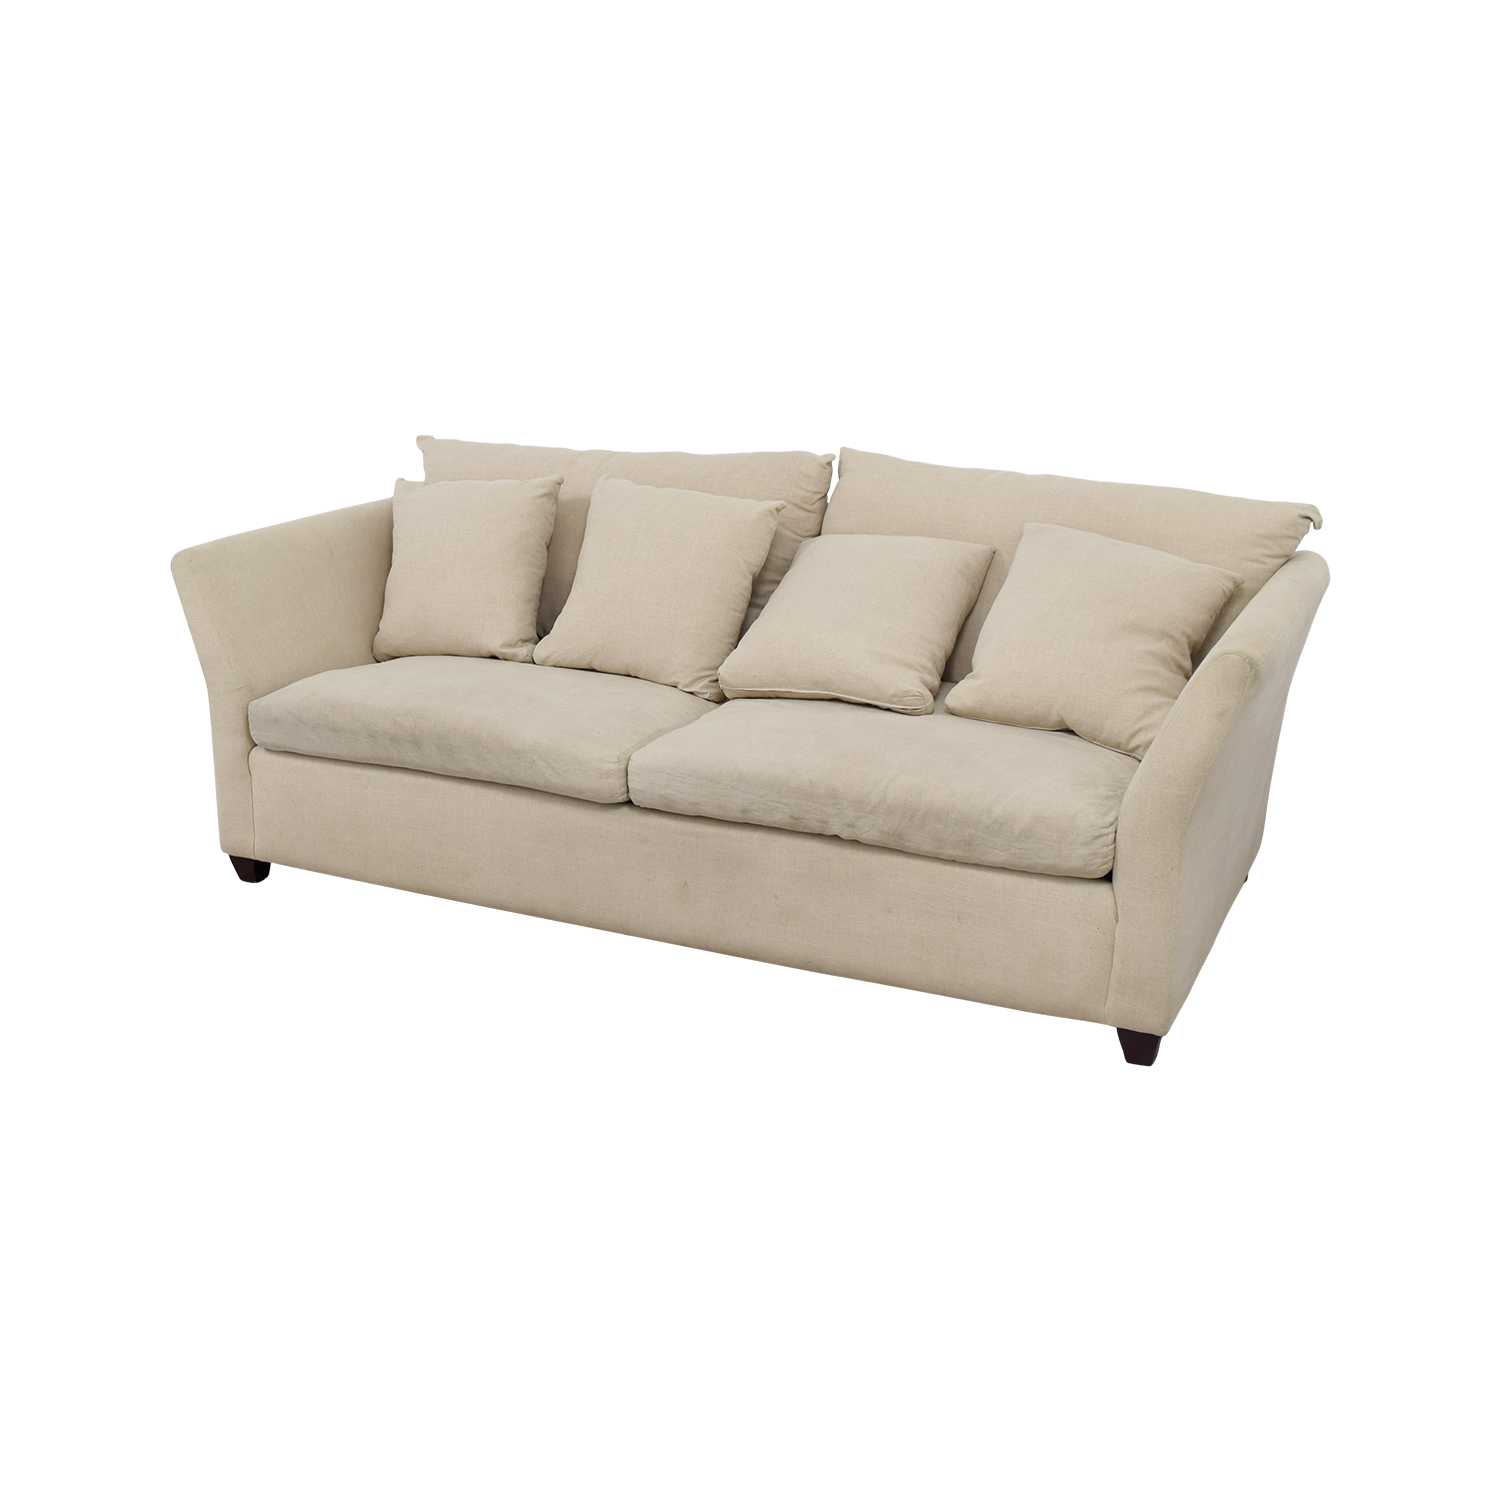 abc sofa bed gray fabric 90 off carpet and home beige